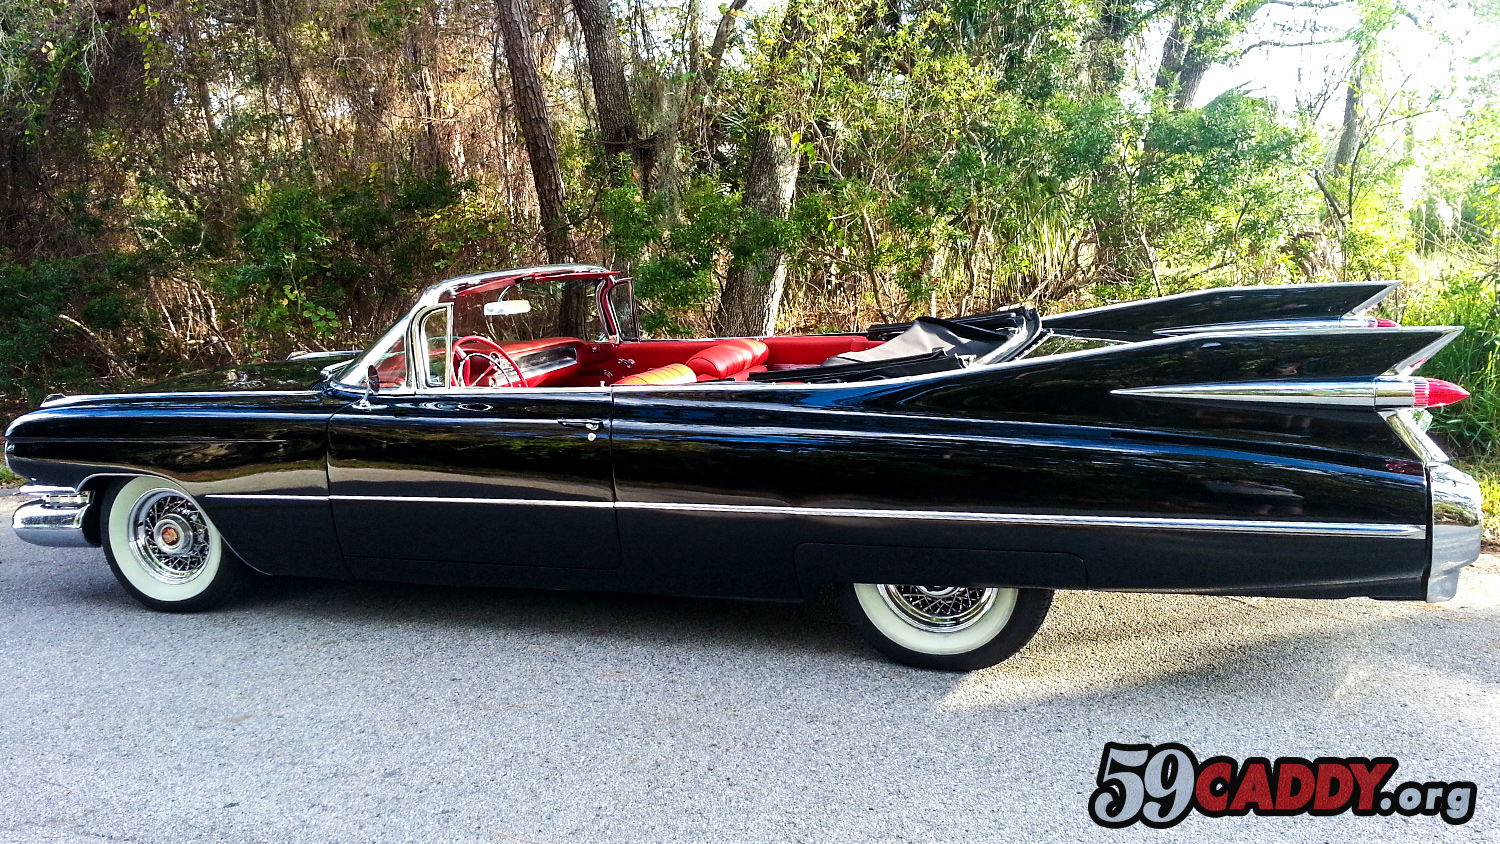 Black 1959 Cadillac Convertible For Sale Black 59 Caddy 1959 Black Cadillac Series 62 Convertible For Sale